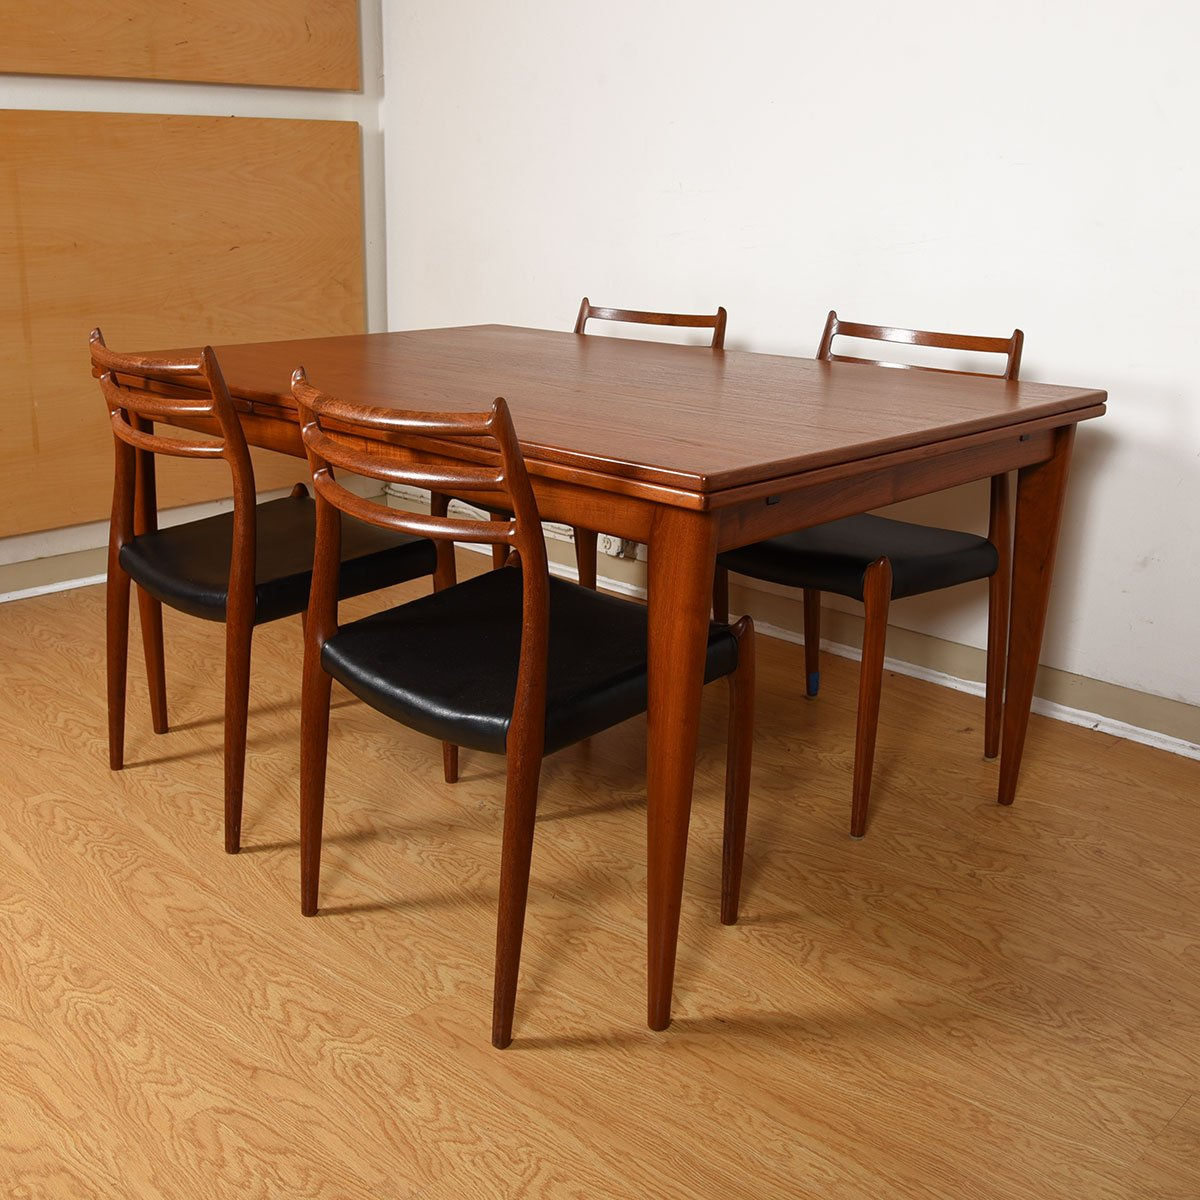 Mid-Sized Danish Teak Dining Table by Niels Møller.